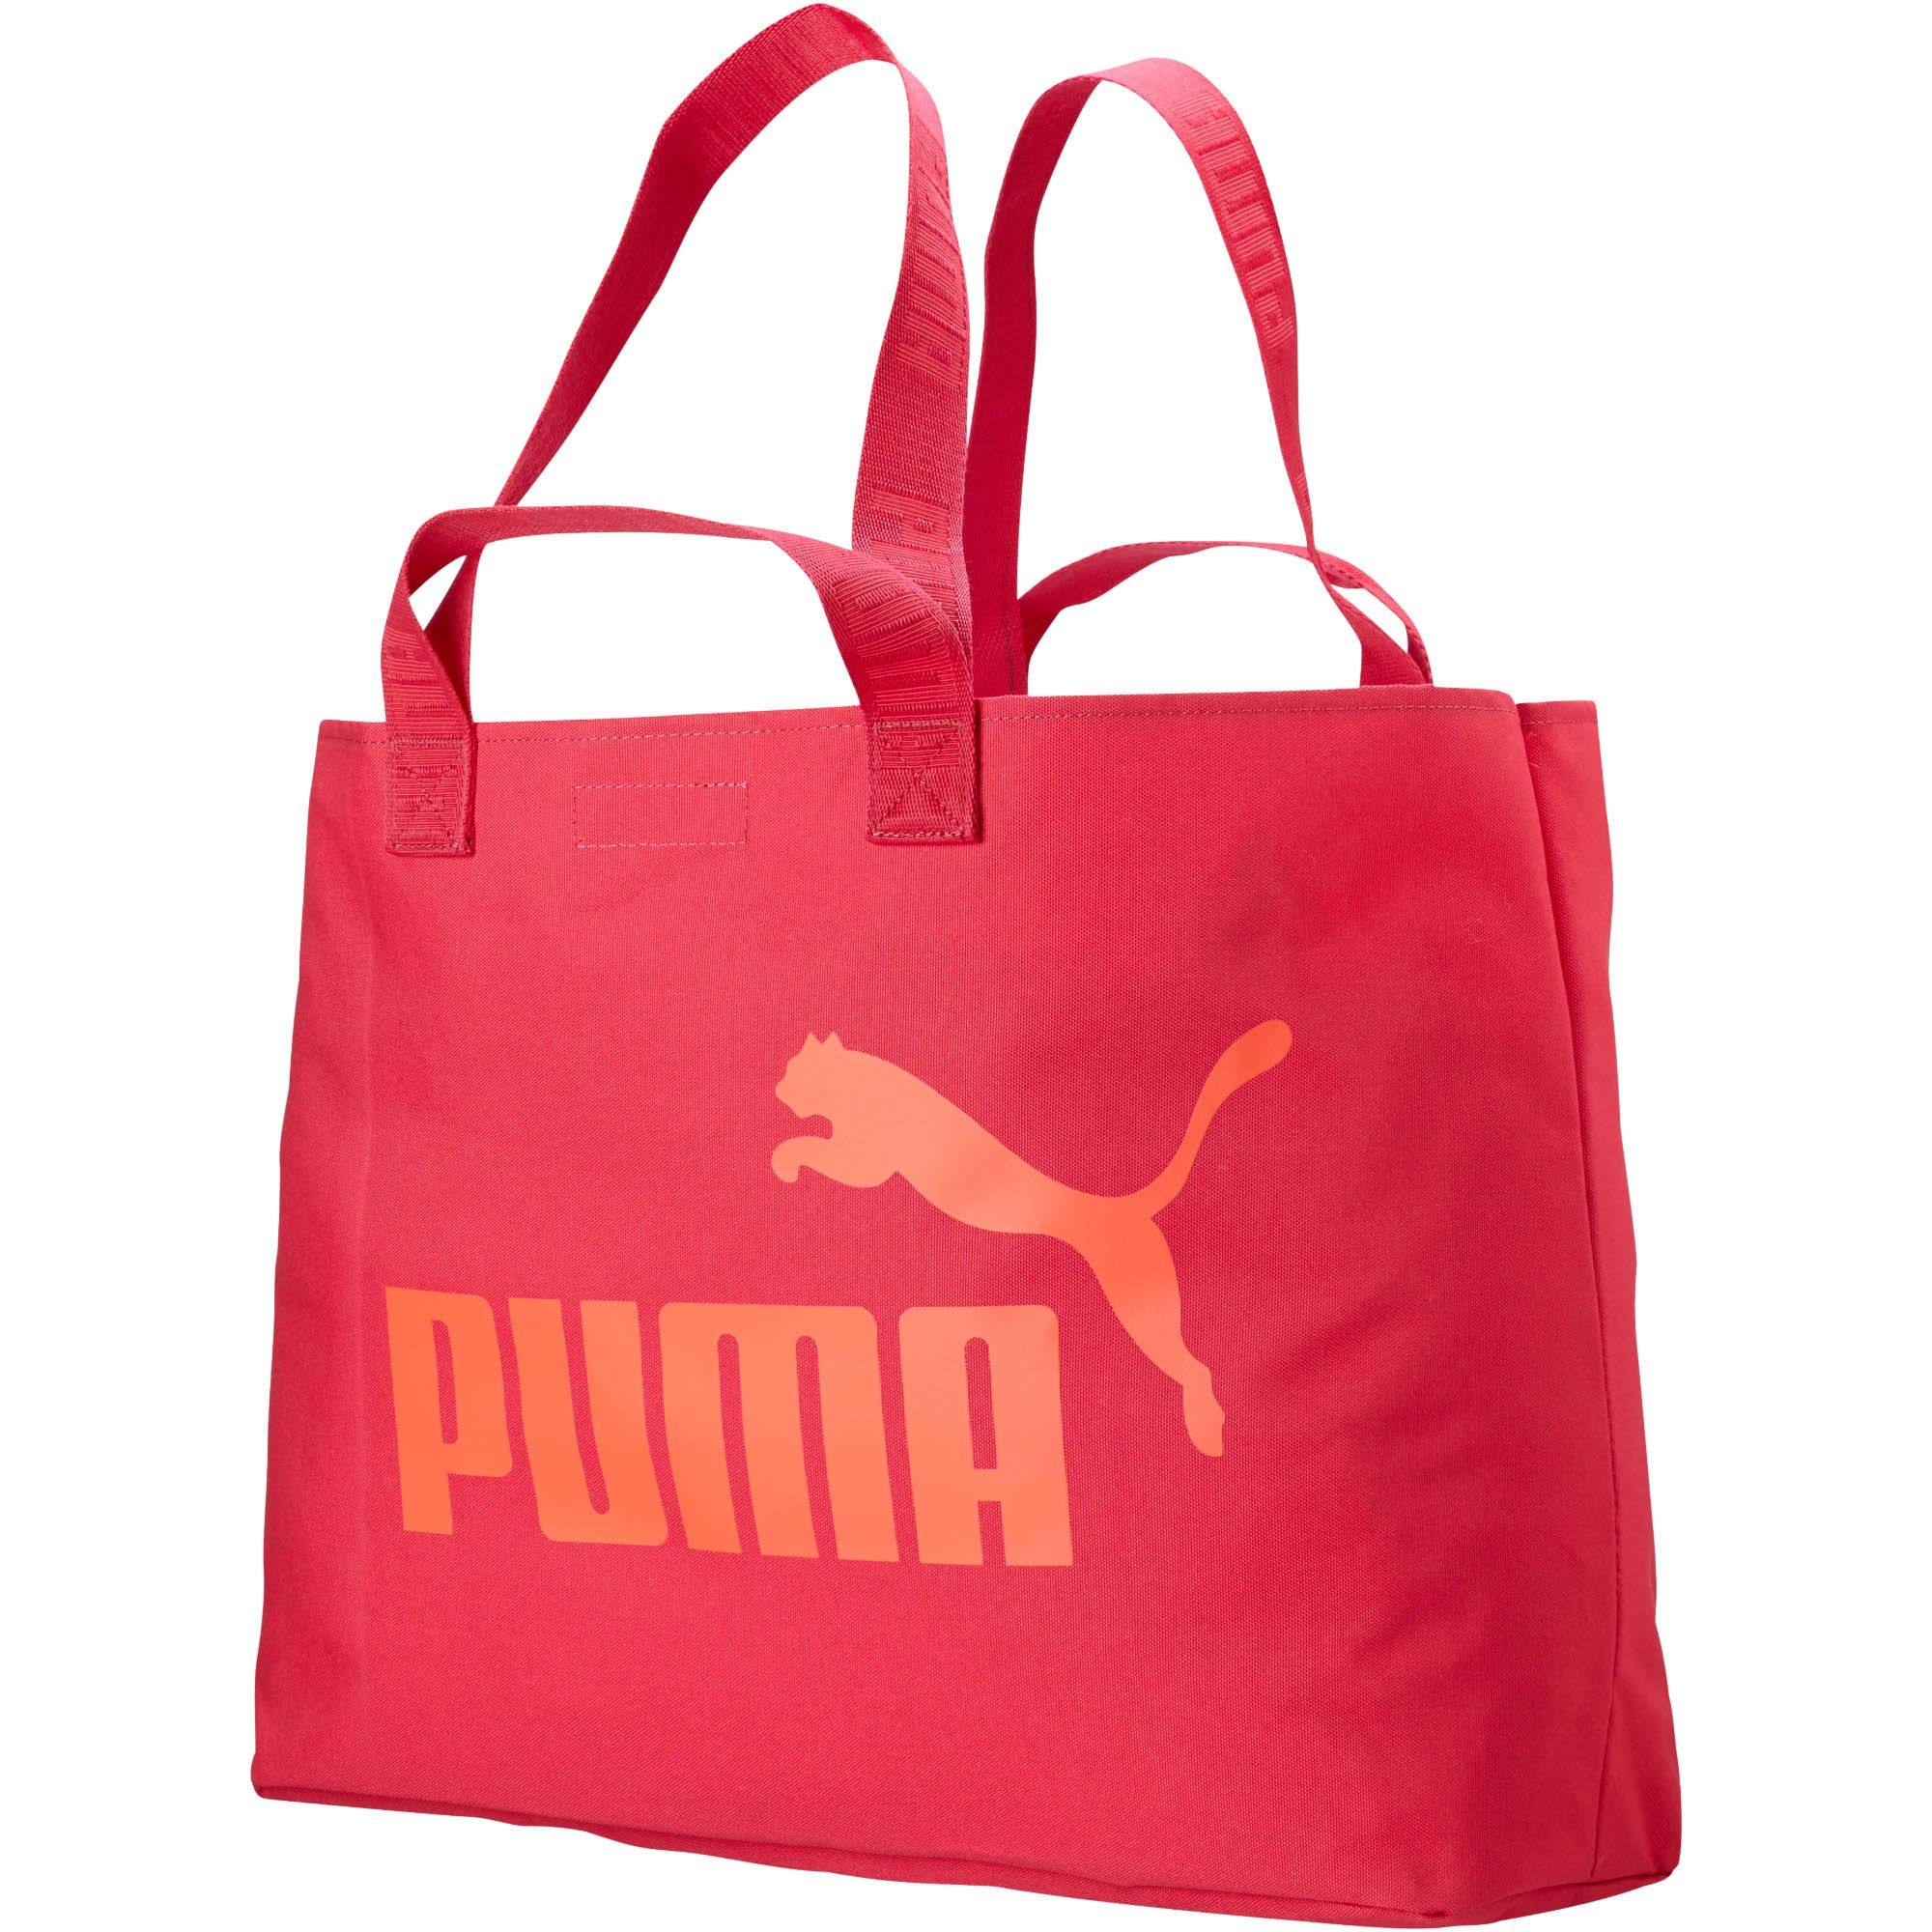 aedf0bf419 Lyst - Puma Large Shopper Bag in Orange